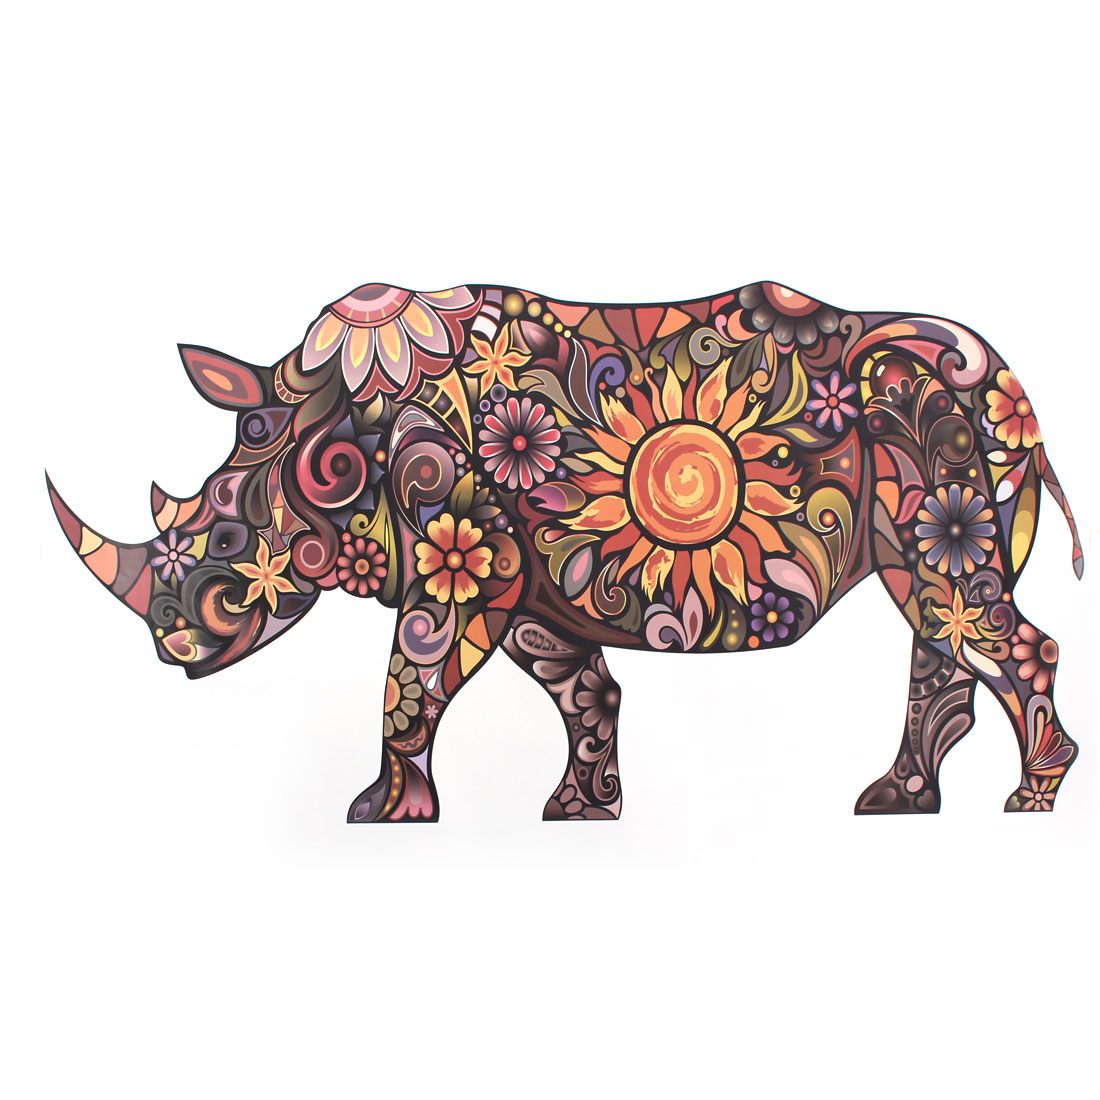 Household Bedroom PVC Rhinoceros Pattern Removable Water Resistant Sticker